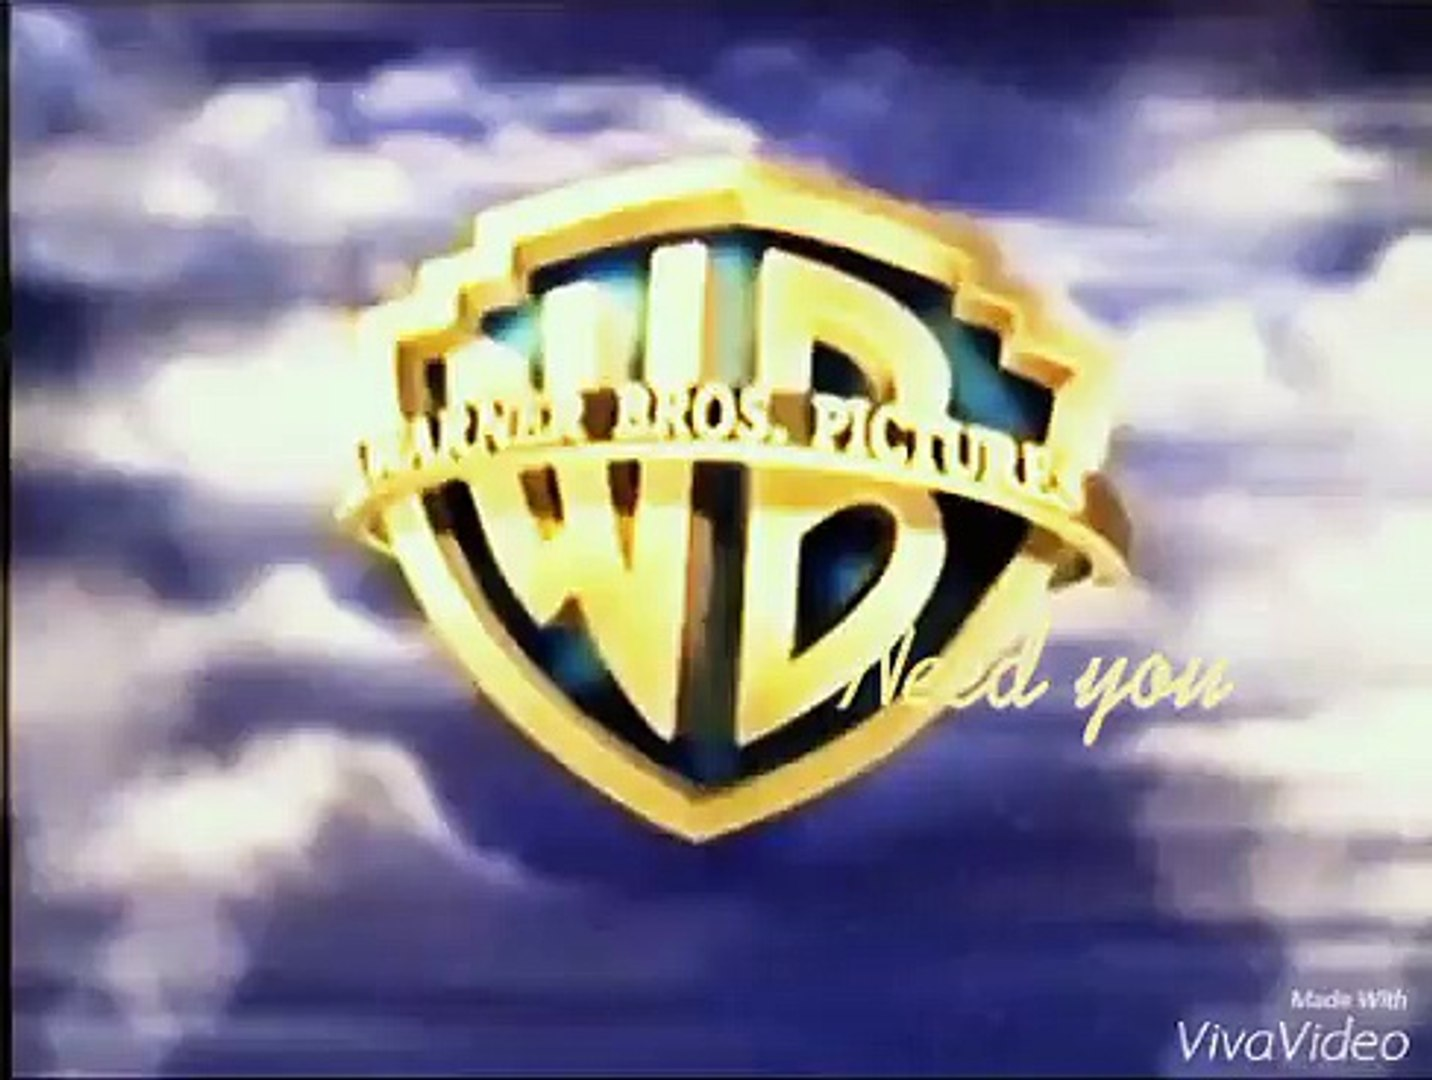 Warner Bros. Pictures/Lakeshore Entertainment/Spyglass Entertainment/Maverick Entertainment